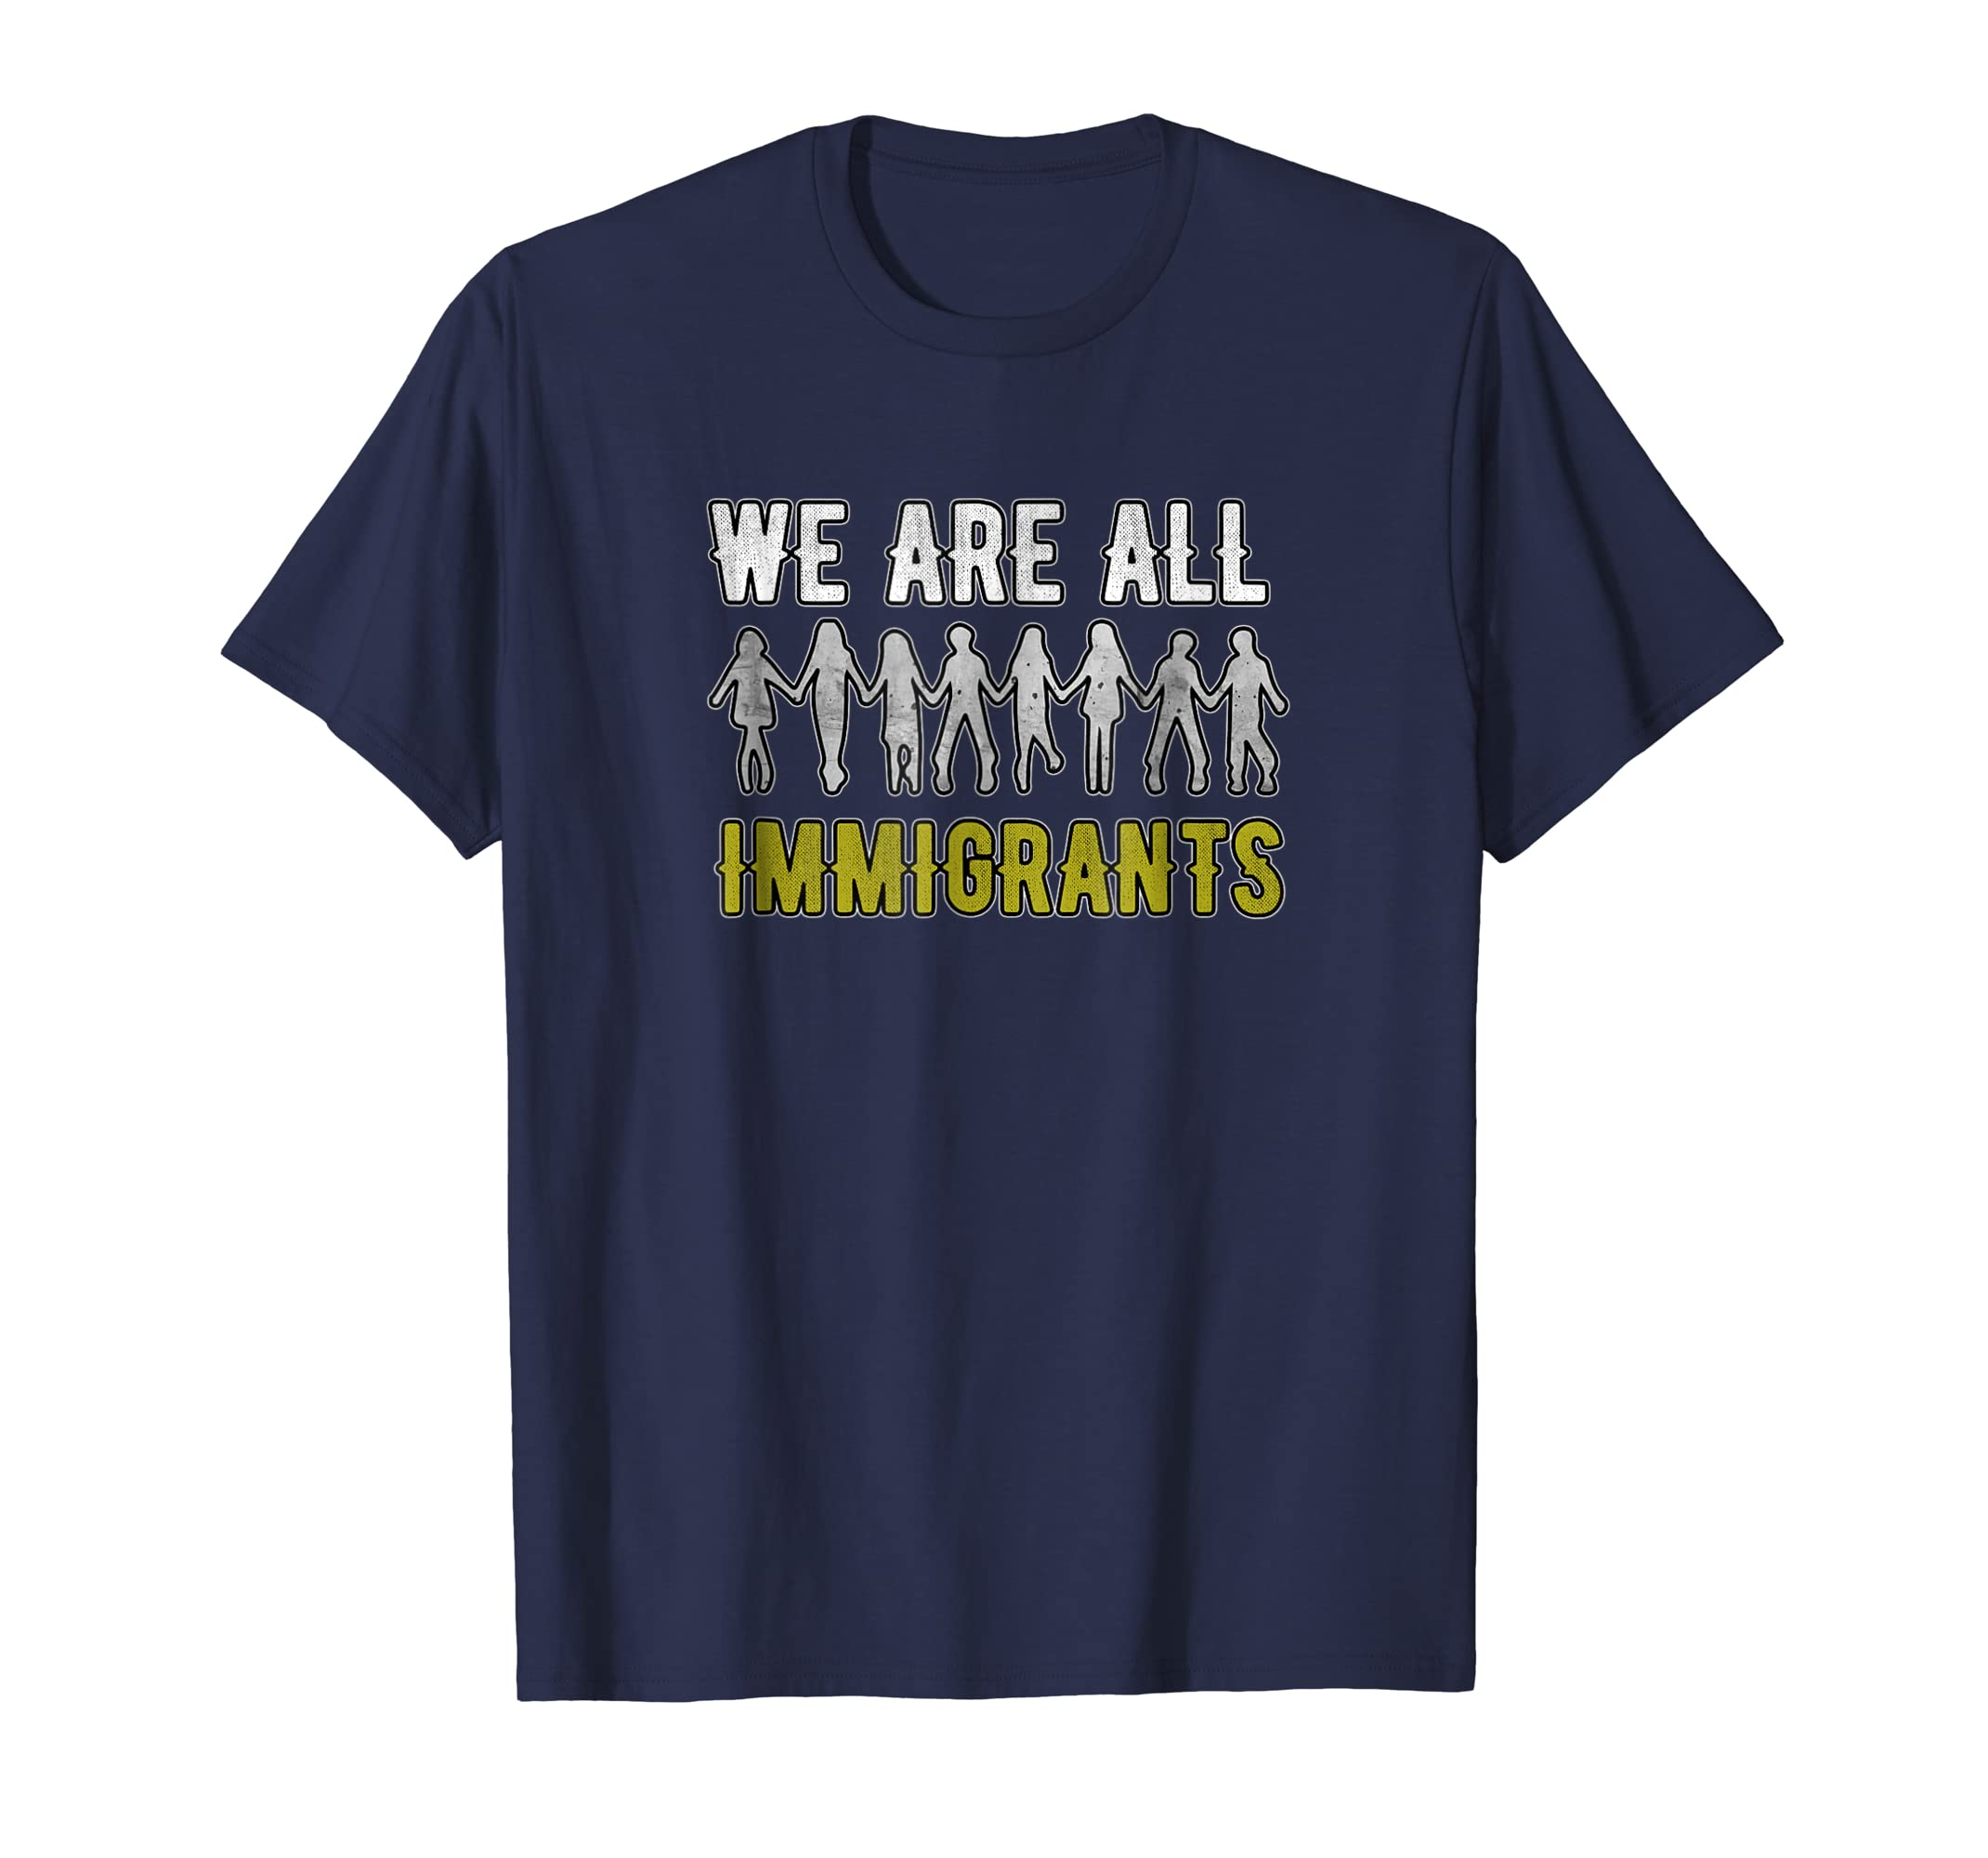 We are all immigrants Tshirt Vintage Perfect Great Tee